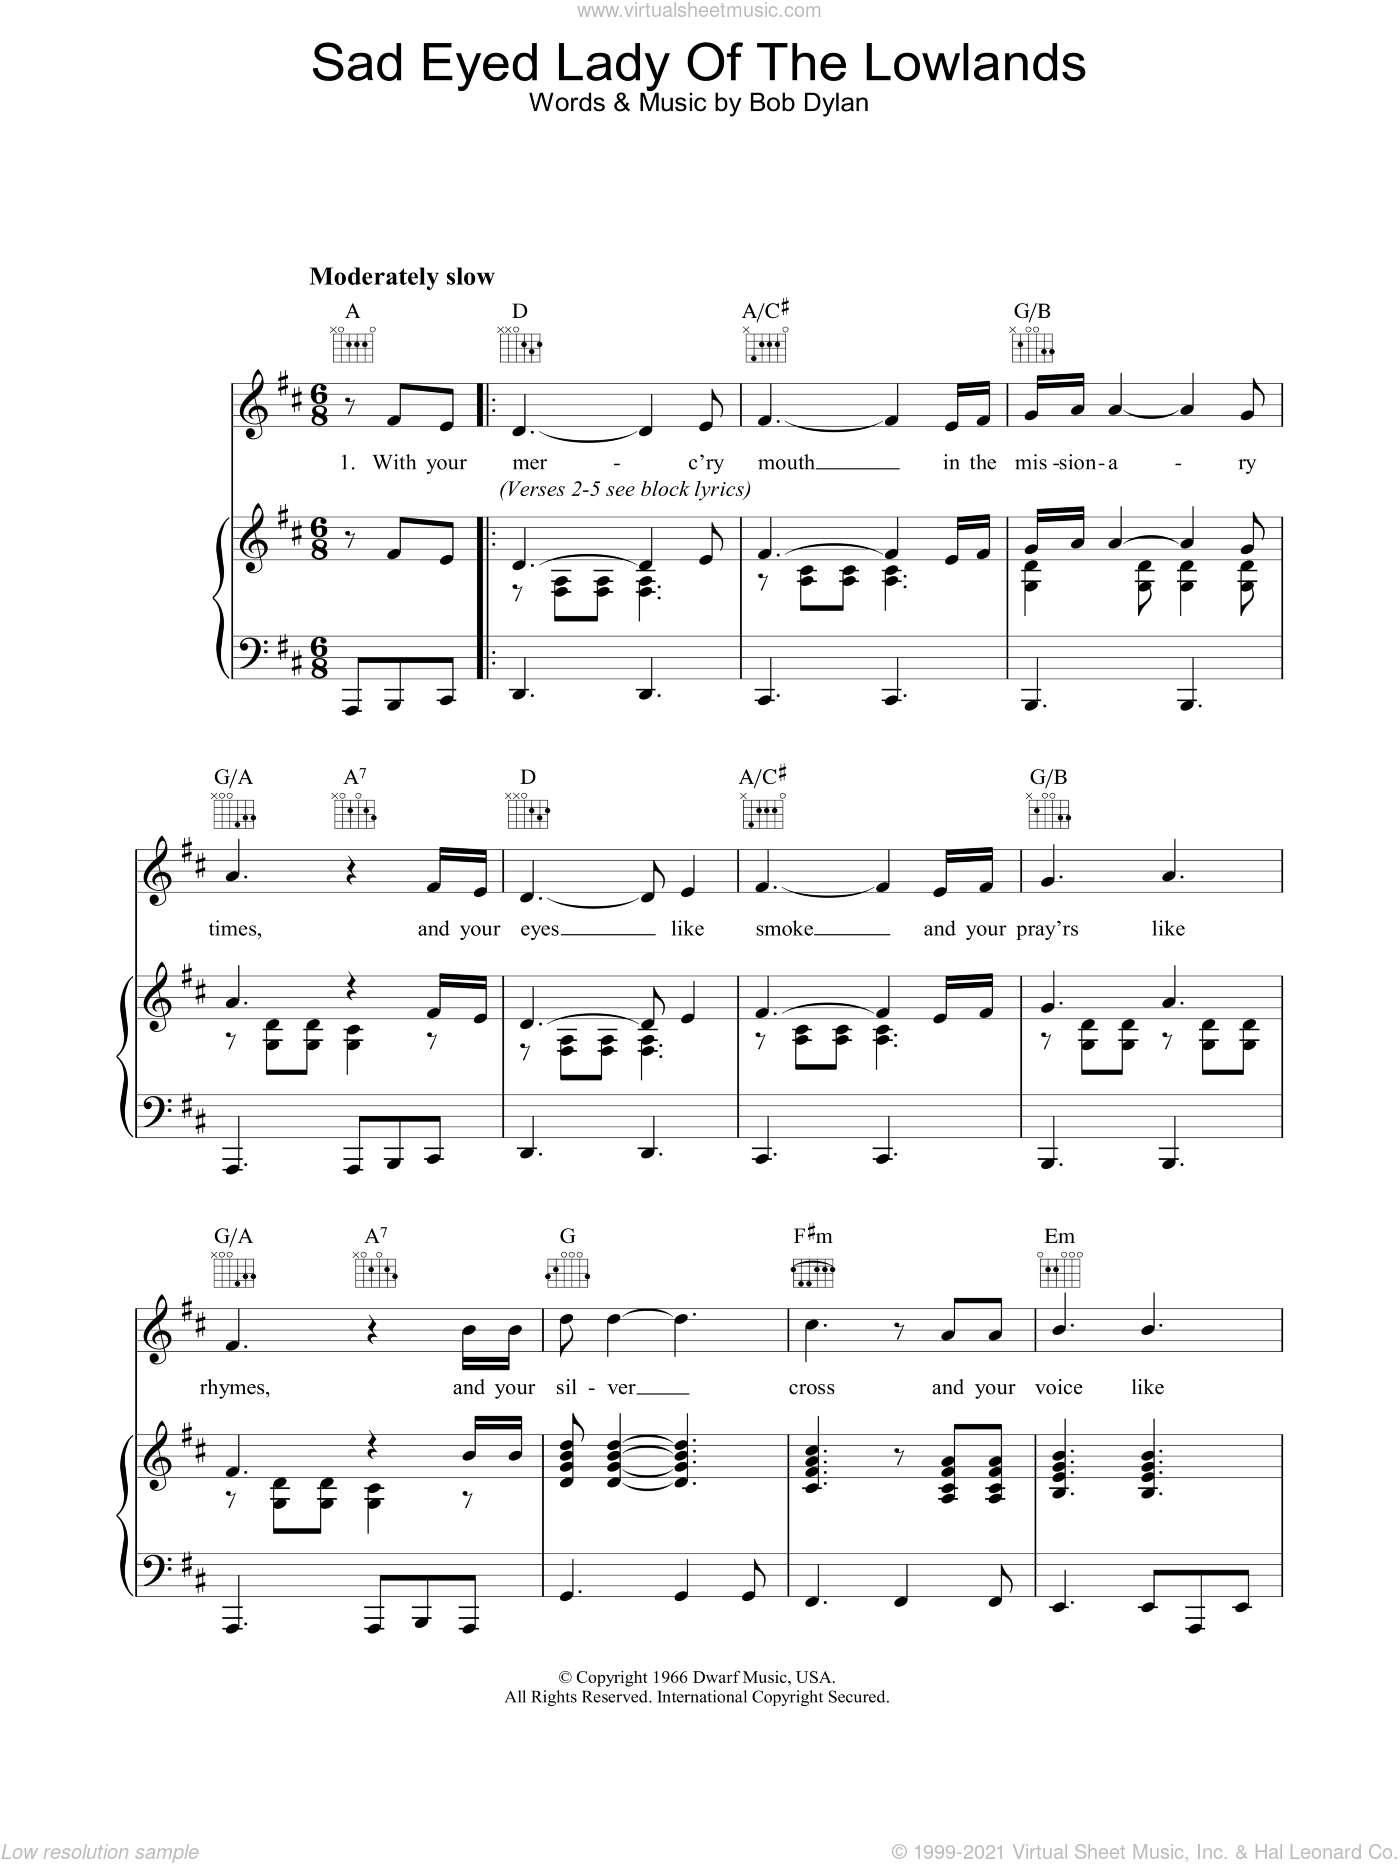 Sad Eyed Lady Of The Lowlands sheet music for voice, piano or guitar by Bob Dylan, intermediate skill level